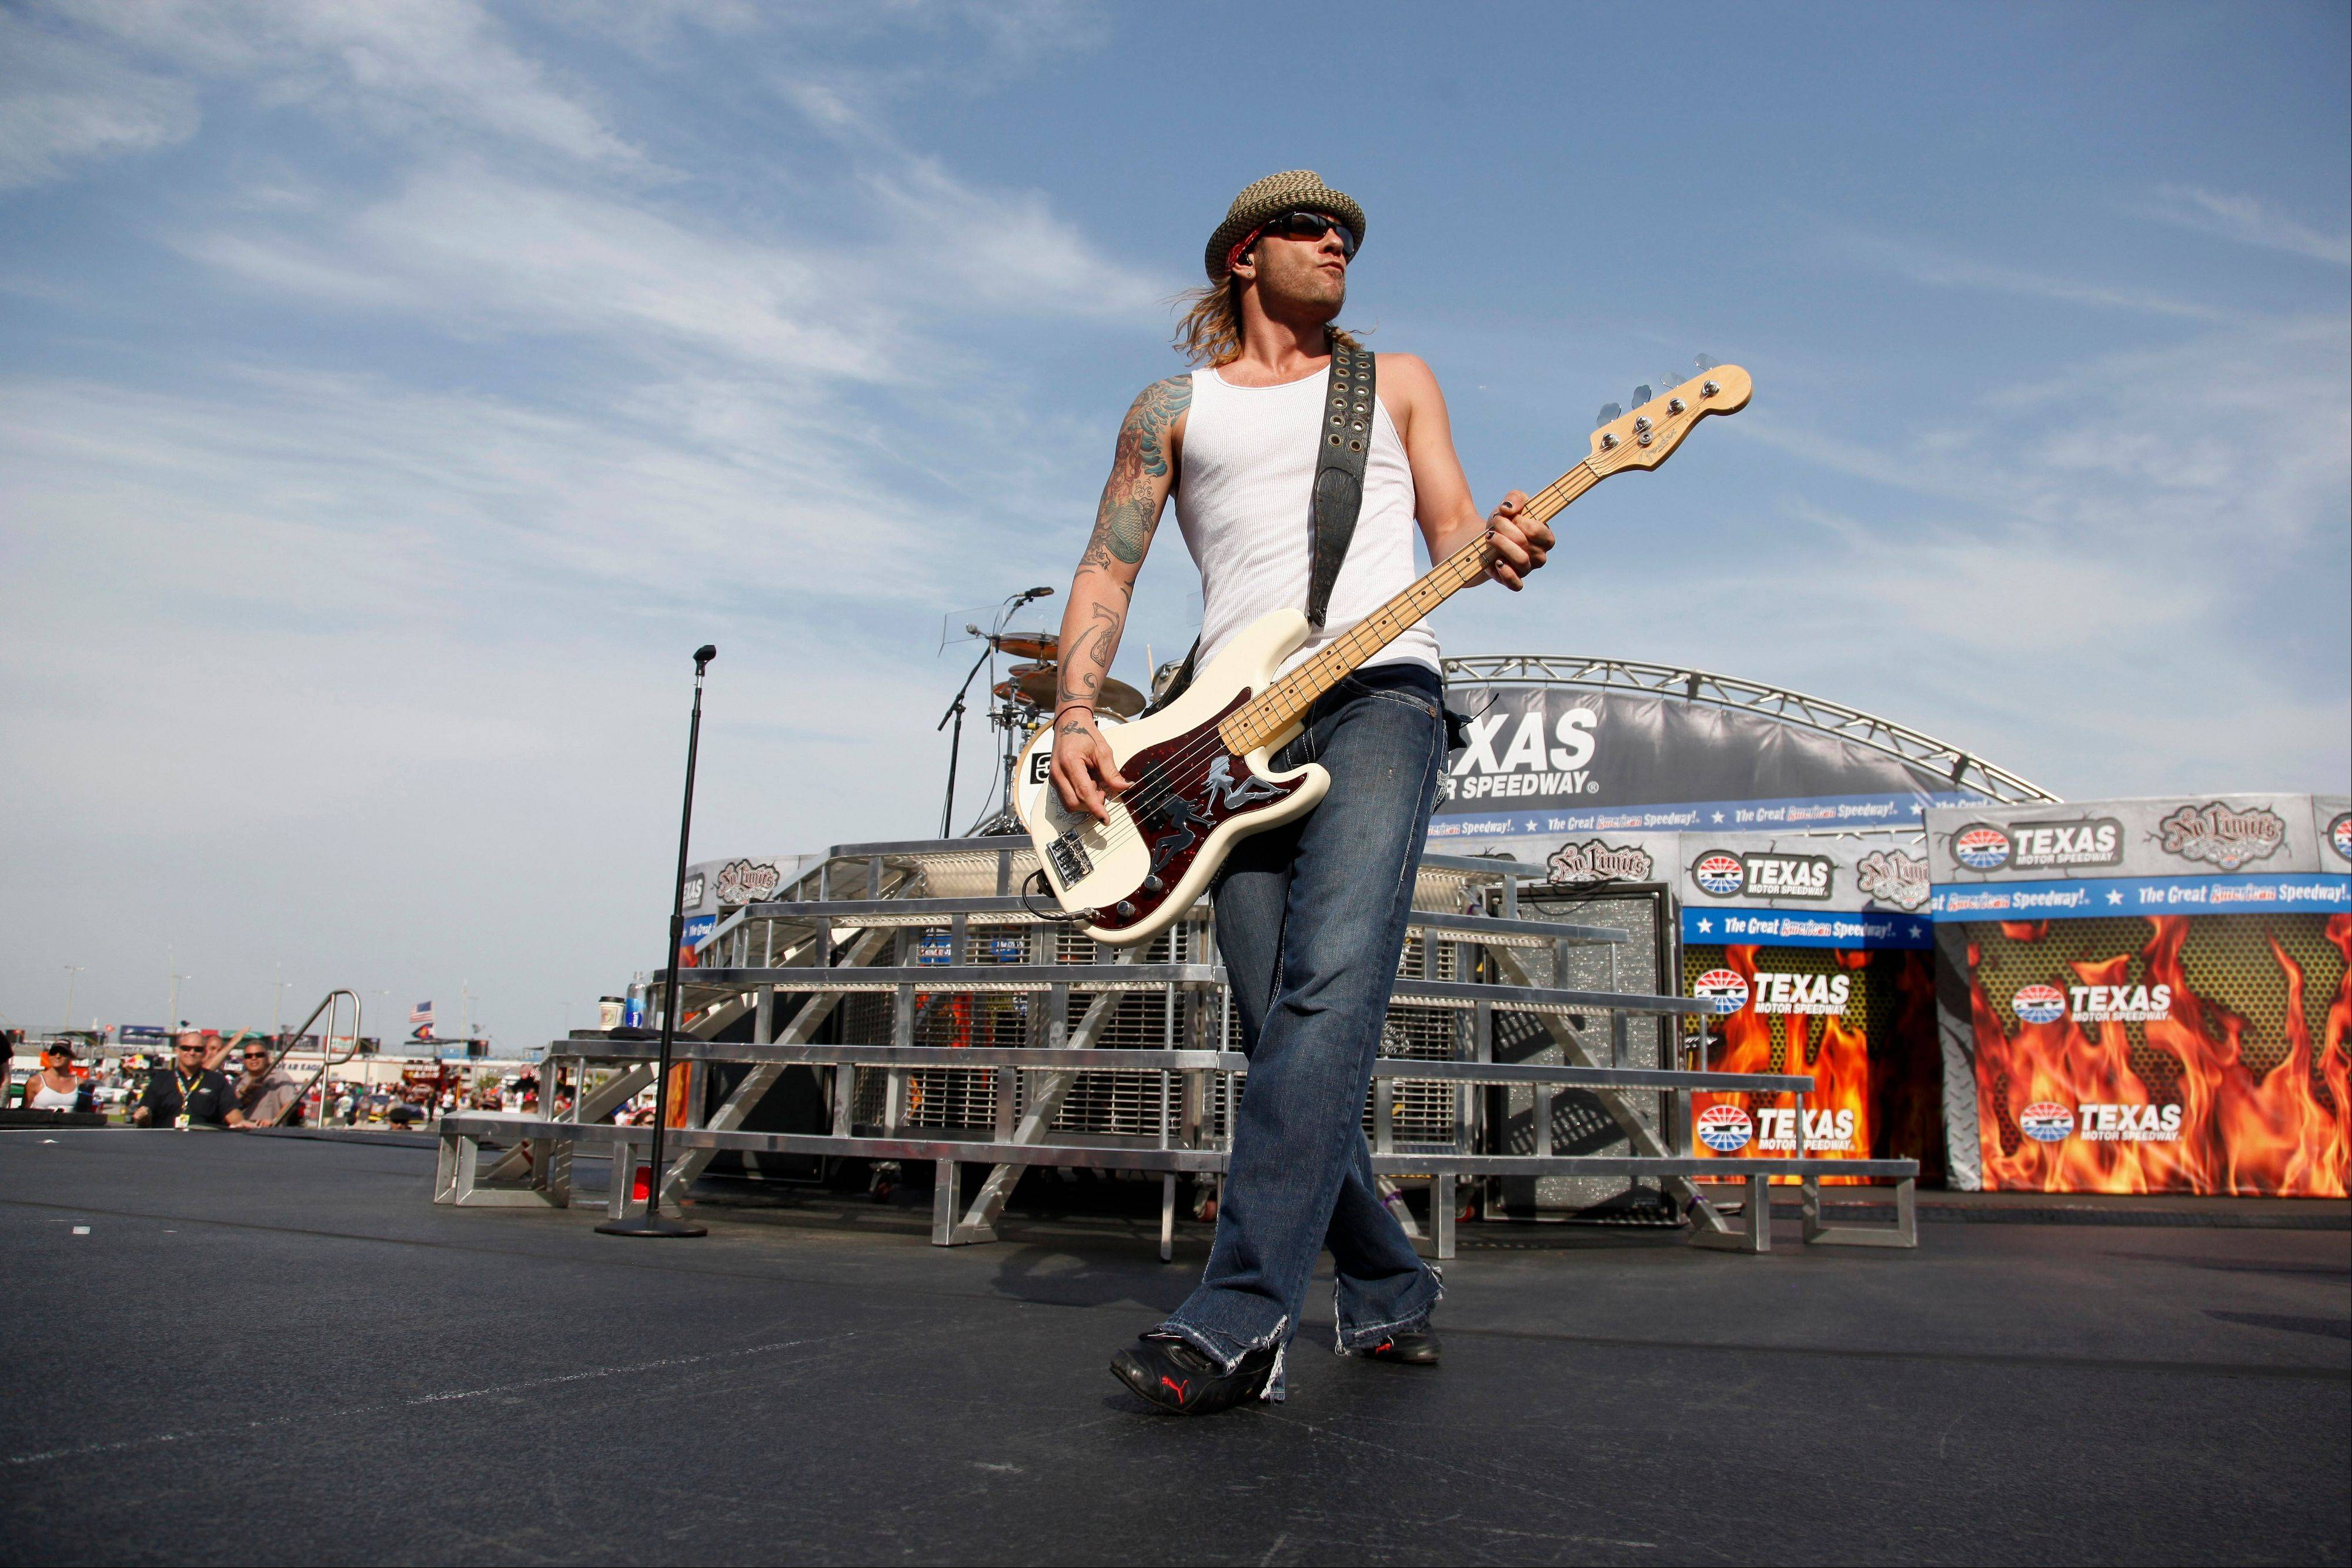 3 Doors Down� bassist Todd Harrell performs before a NASCAR race at Texas Motor Speedway in Fort Worth, Texas, in 2011. Harrell has been charged with vehicular homicide by intoxication in a fatal crash near Nashville.